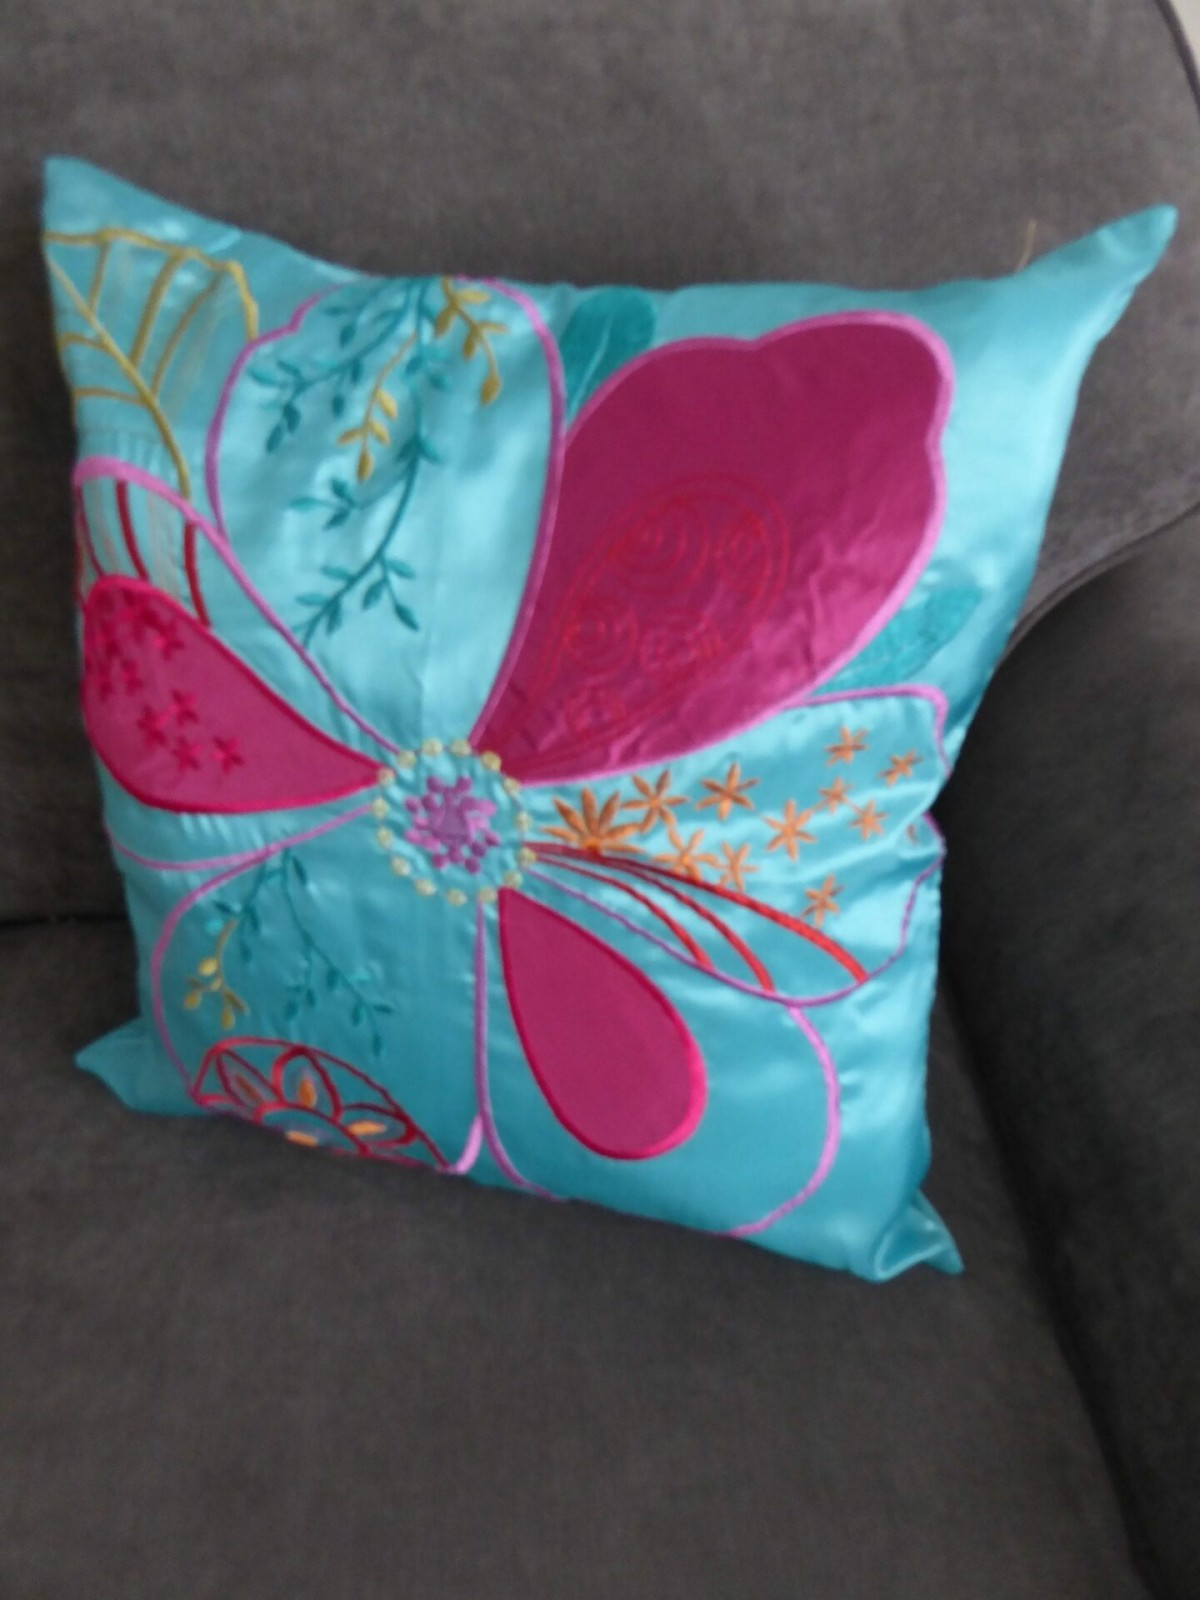 Rio Cover Turquoise Cushion Cover at Henley Circle Online Shop